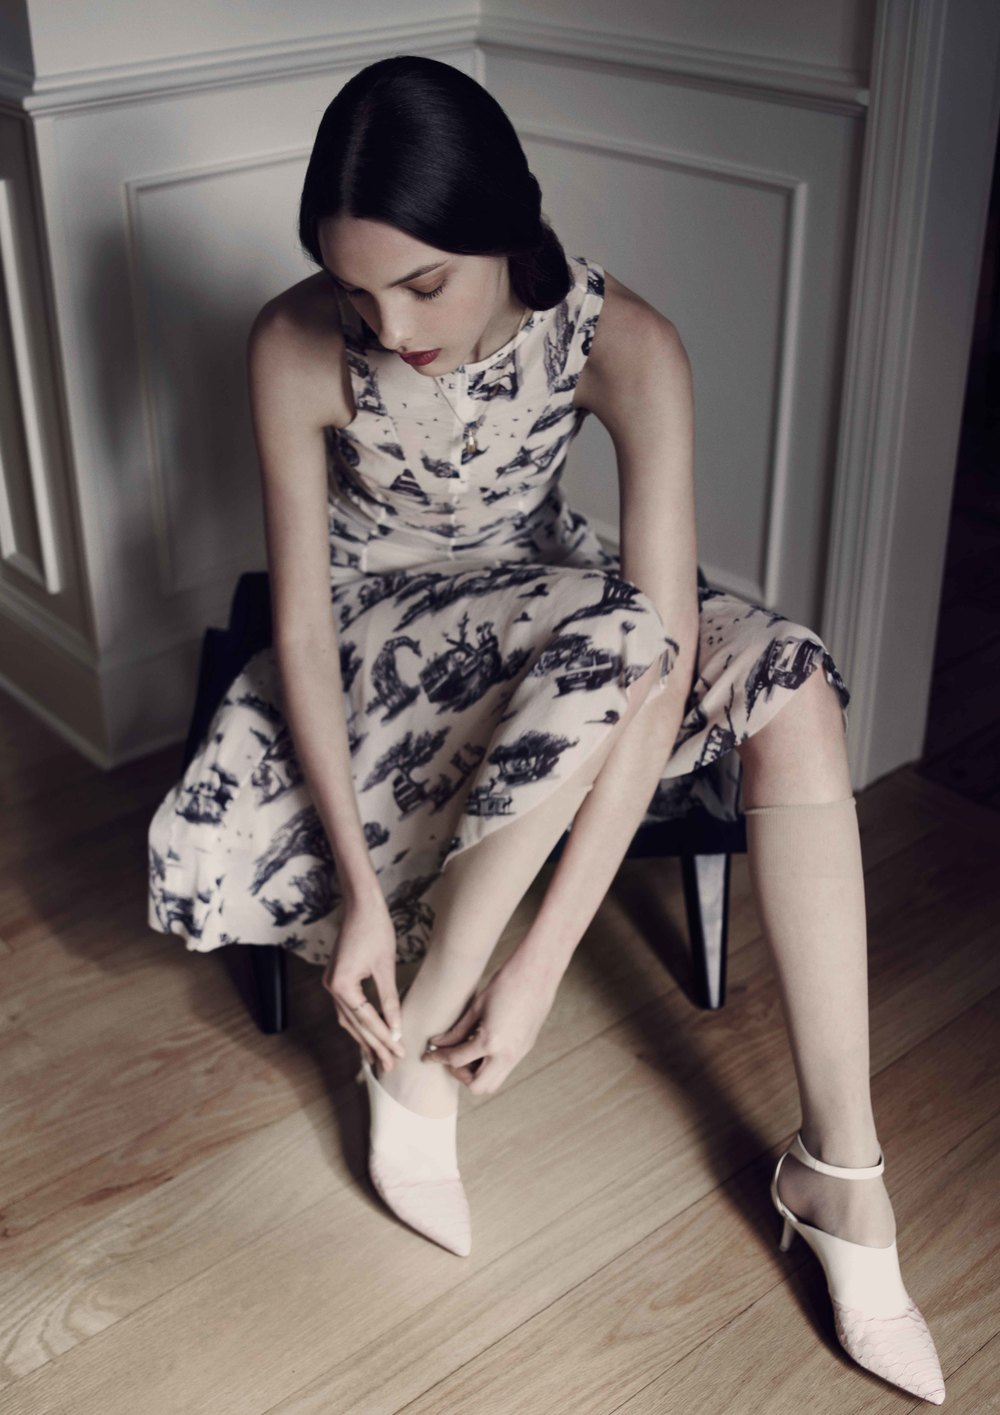 Carven Dress Susan Caplan Locket Necklace Stylist's Own Rabbit Ring Nude Sheer Socks from We Love Colours Ports 1961 Python Kitten Heel